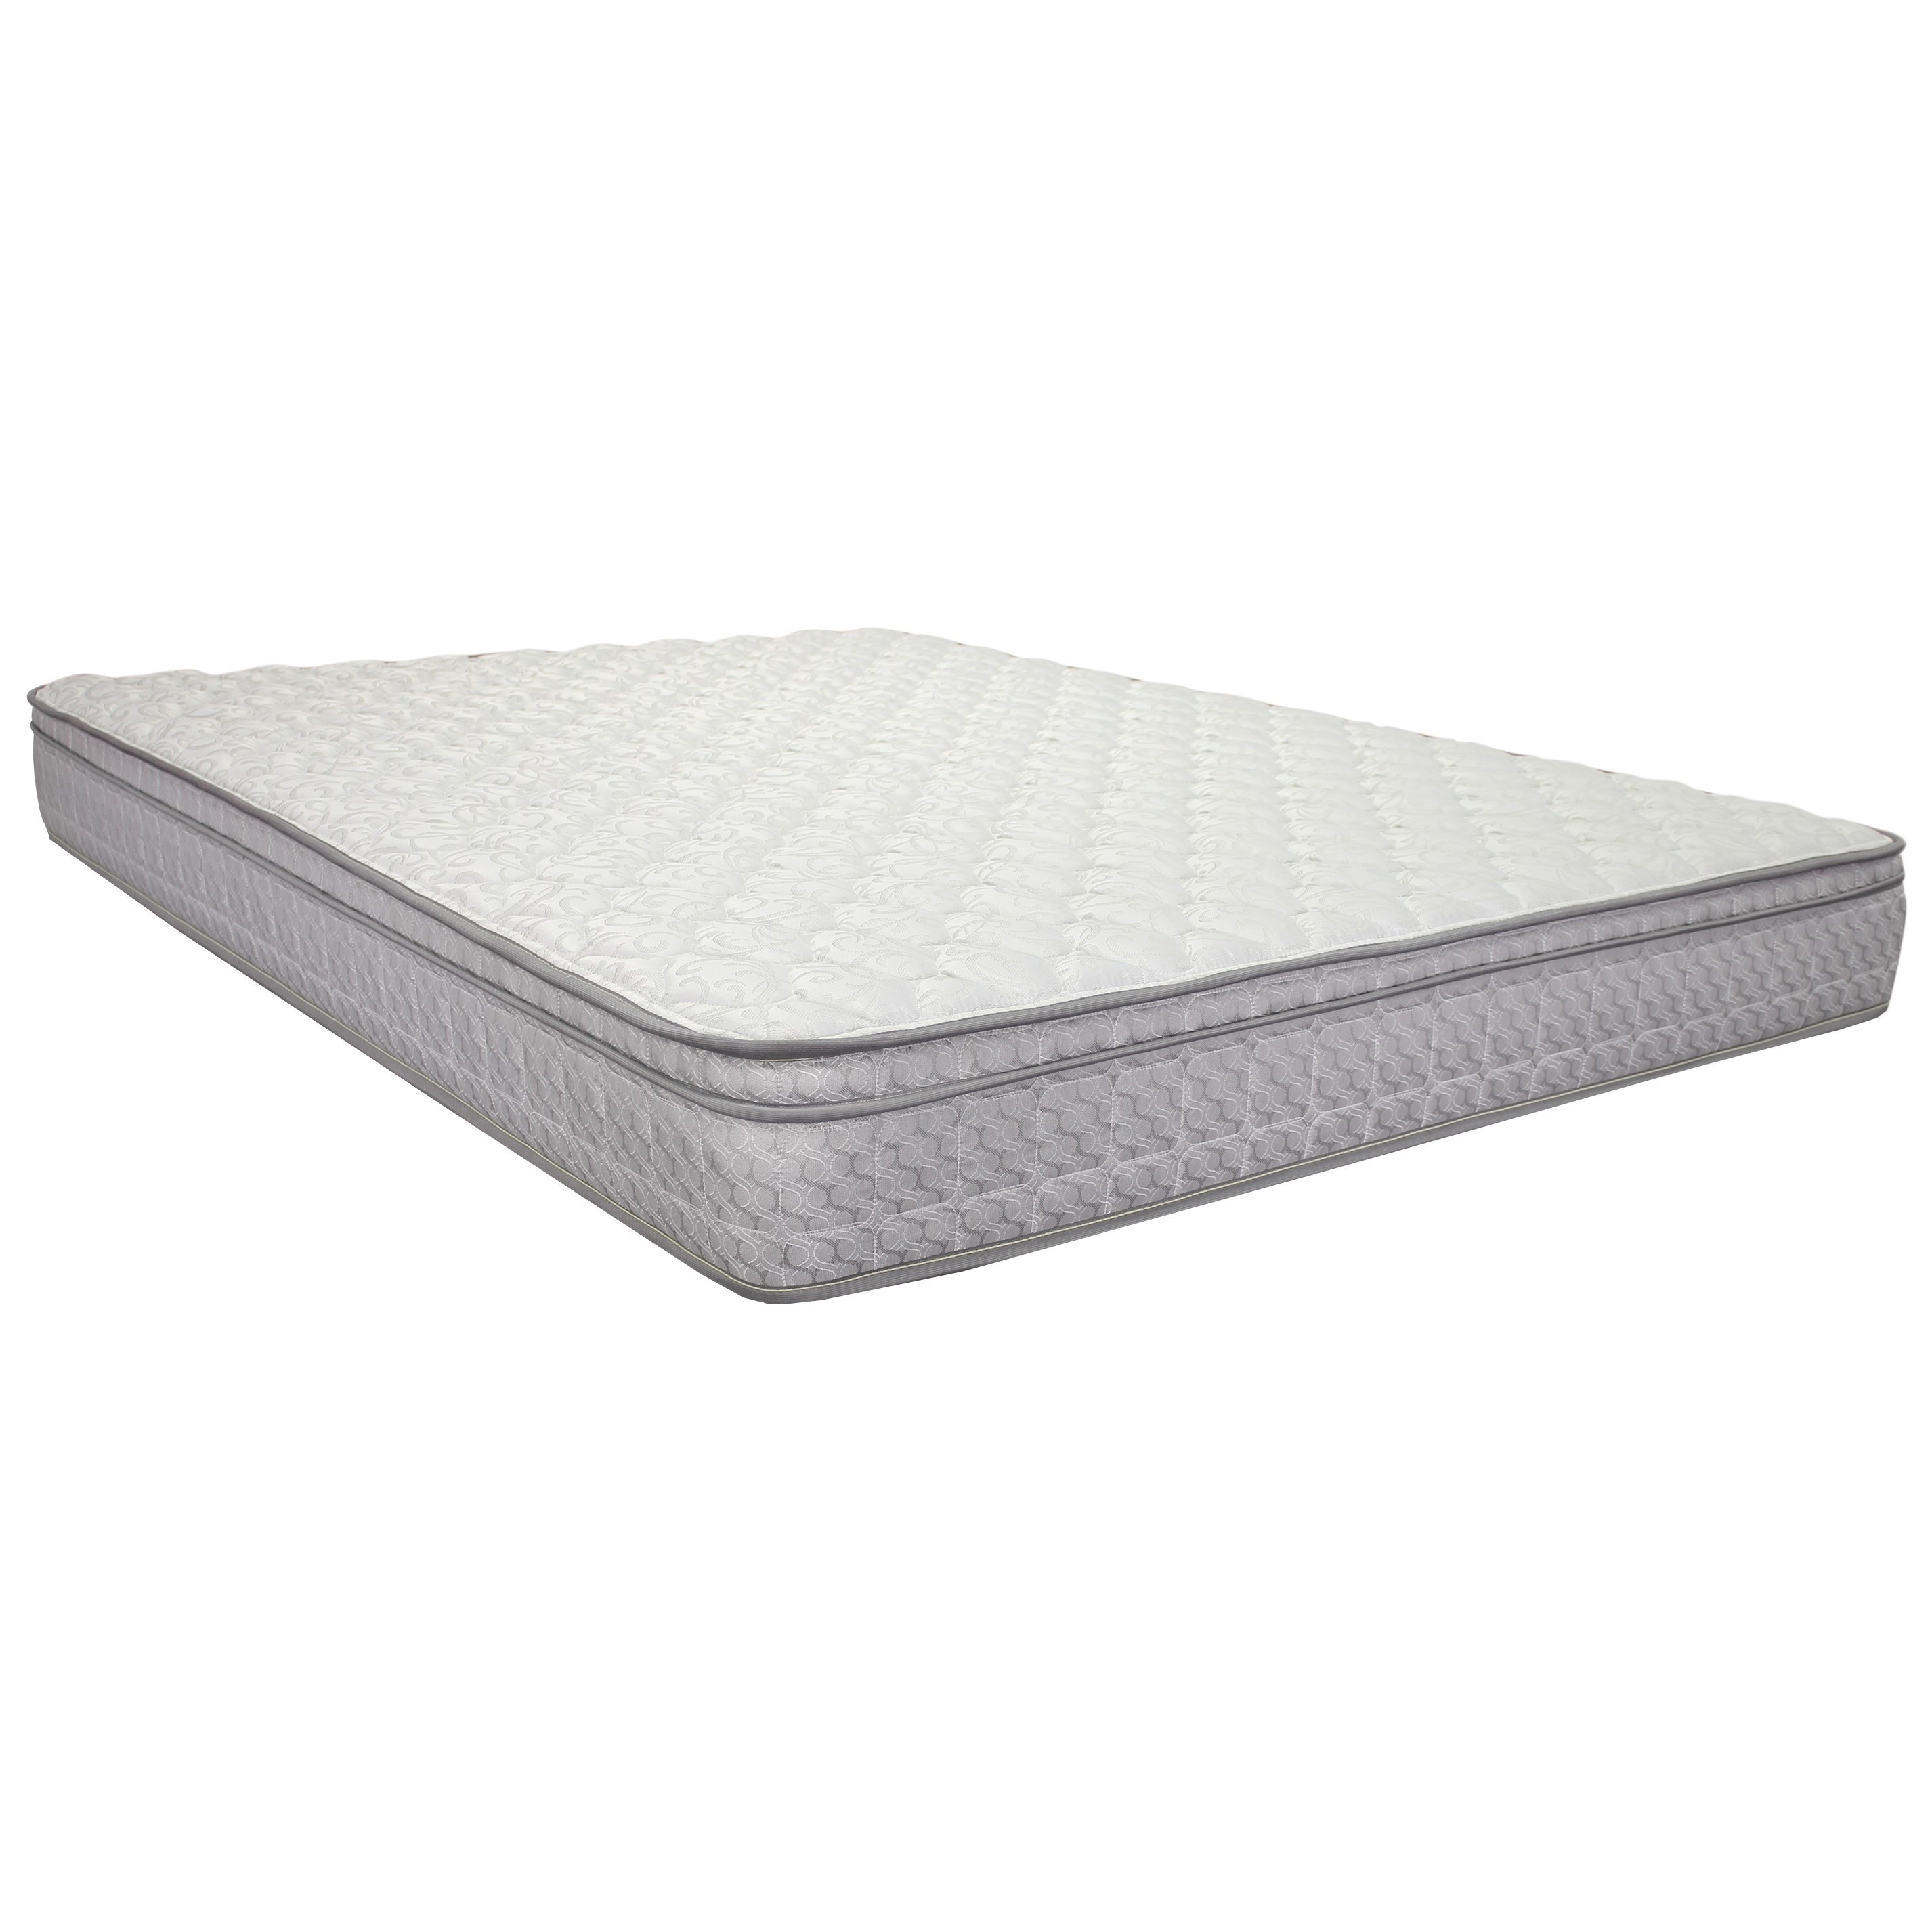 "Twin 8 1/2"" All Foam Mattress"